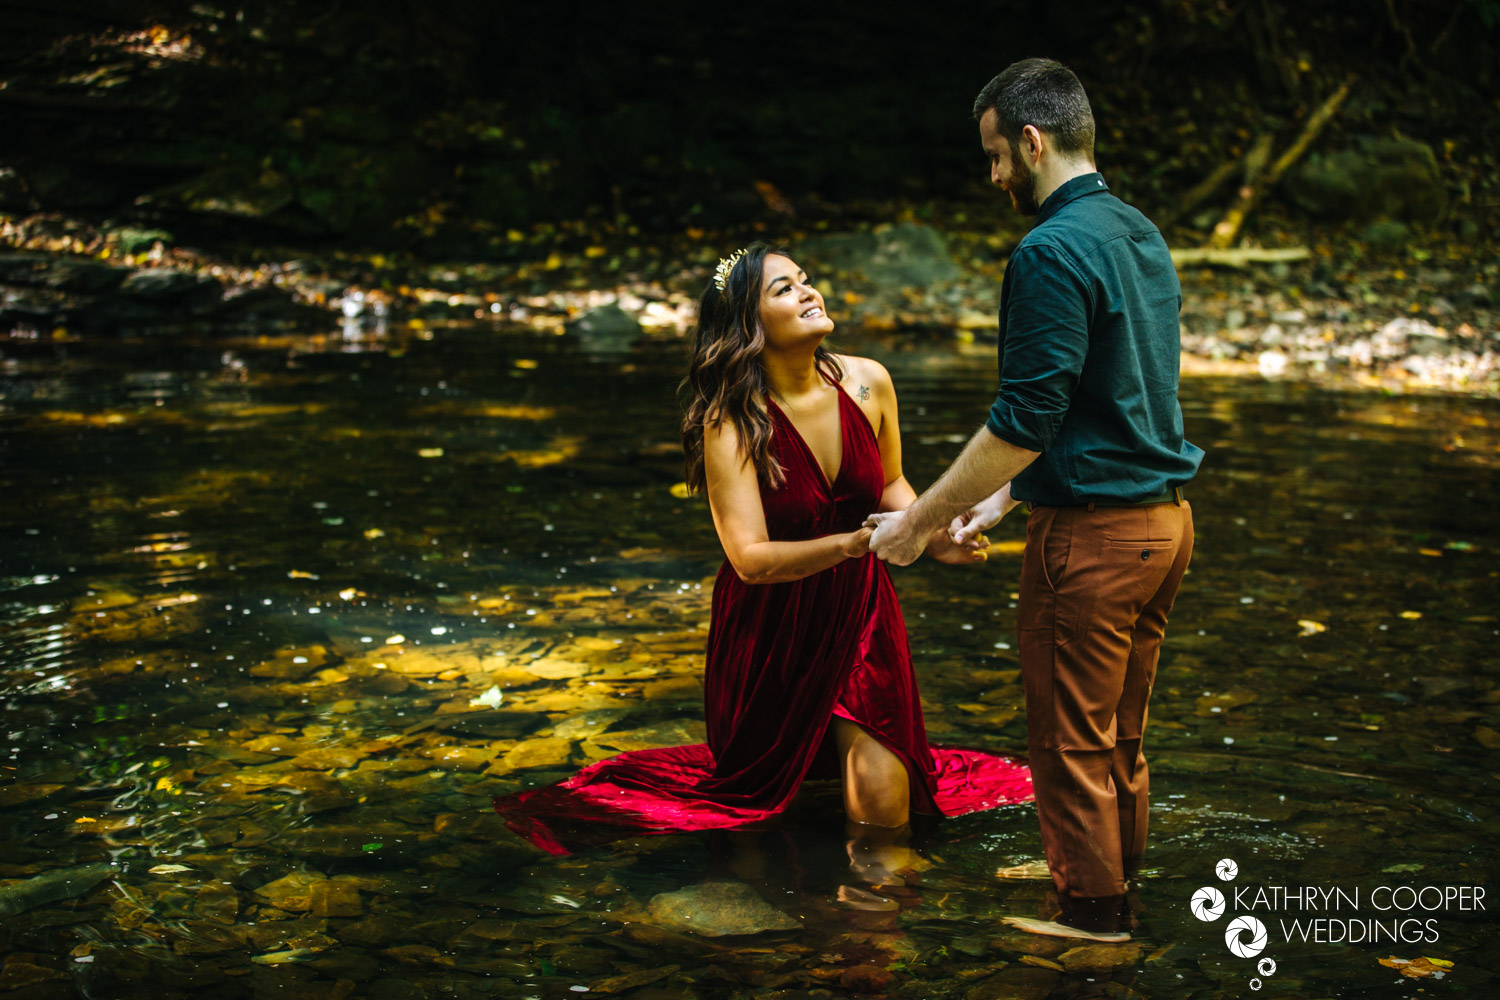 Engagement photo session in the water in Bucks County PA